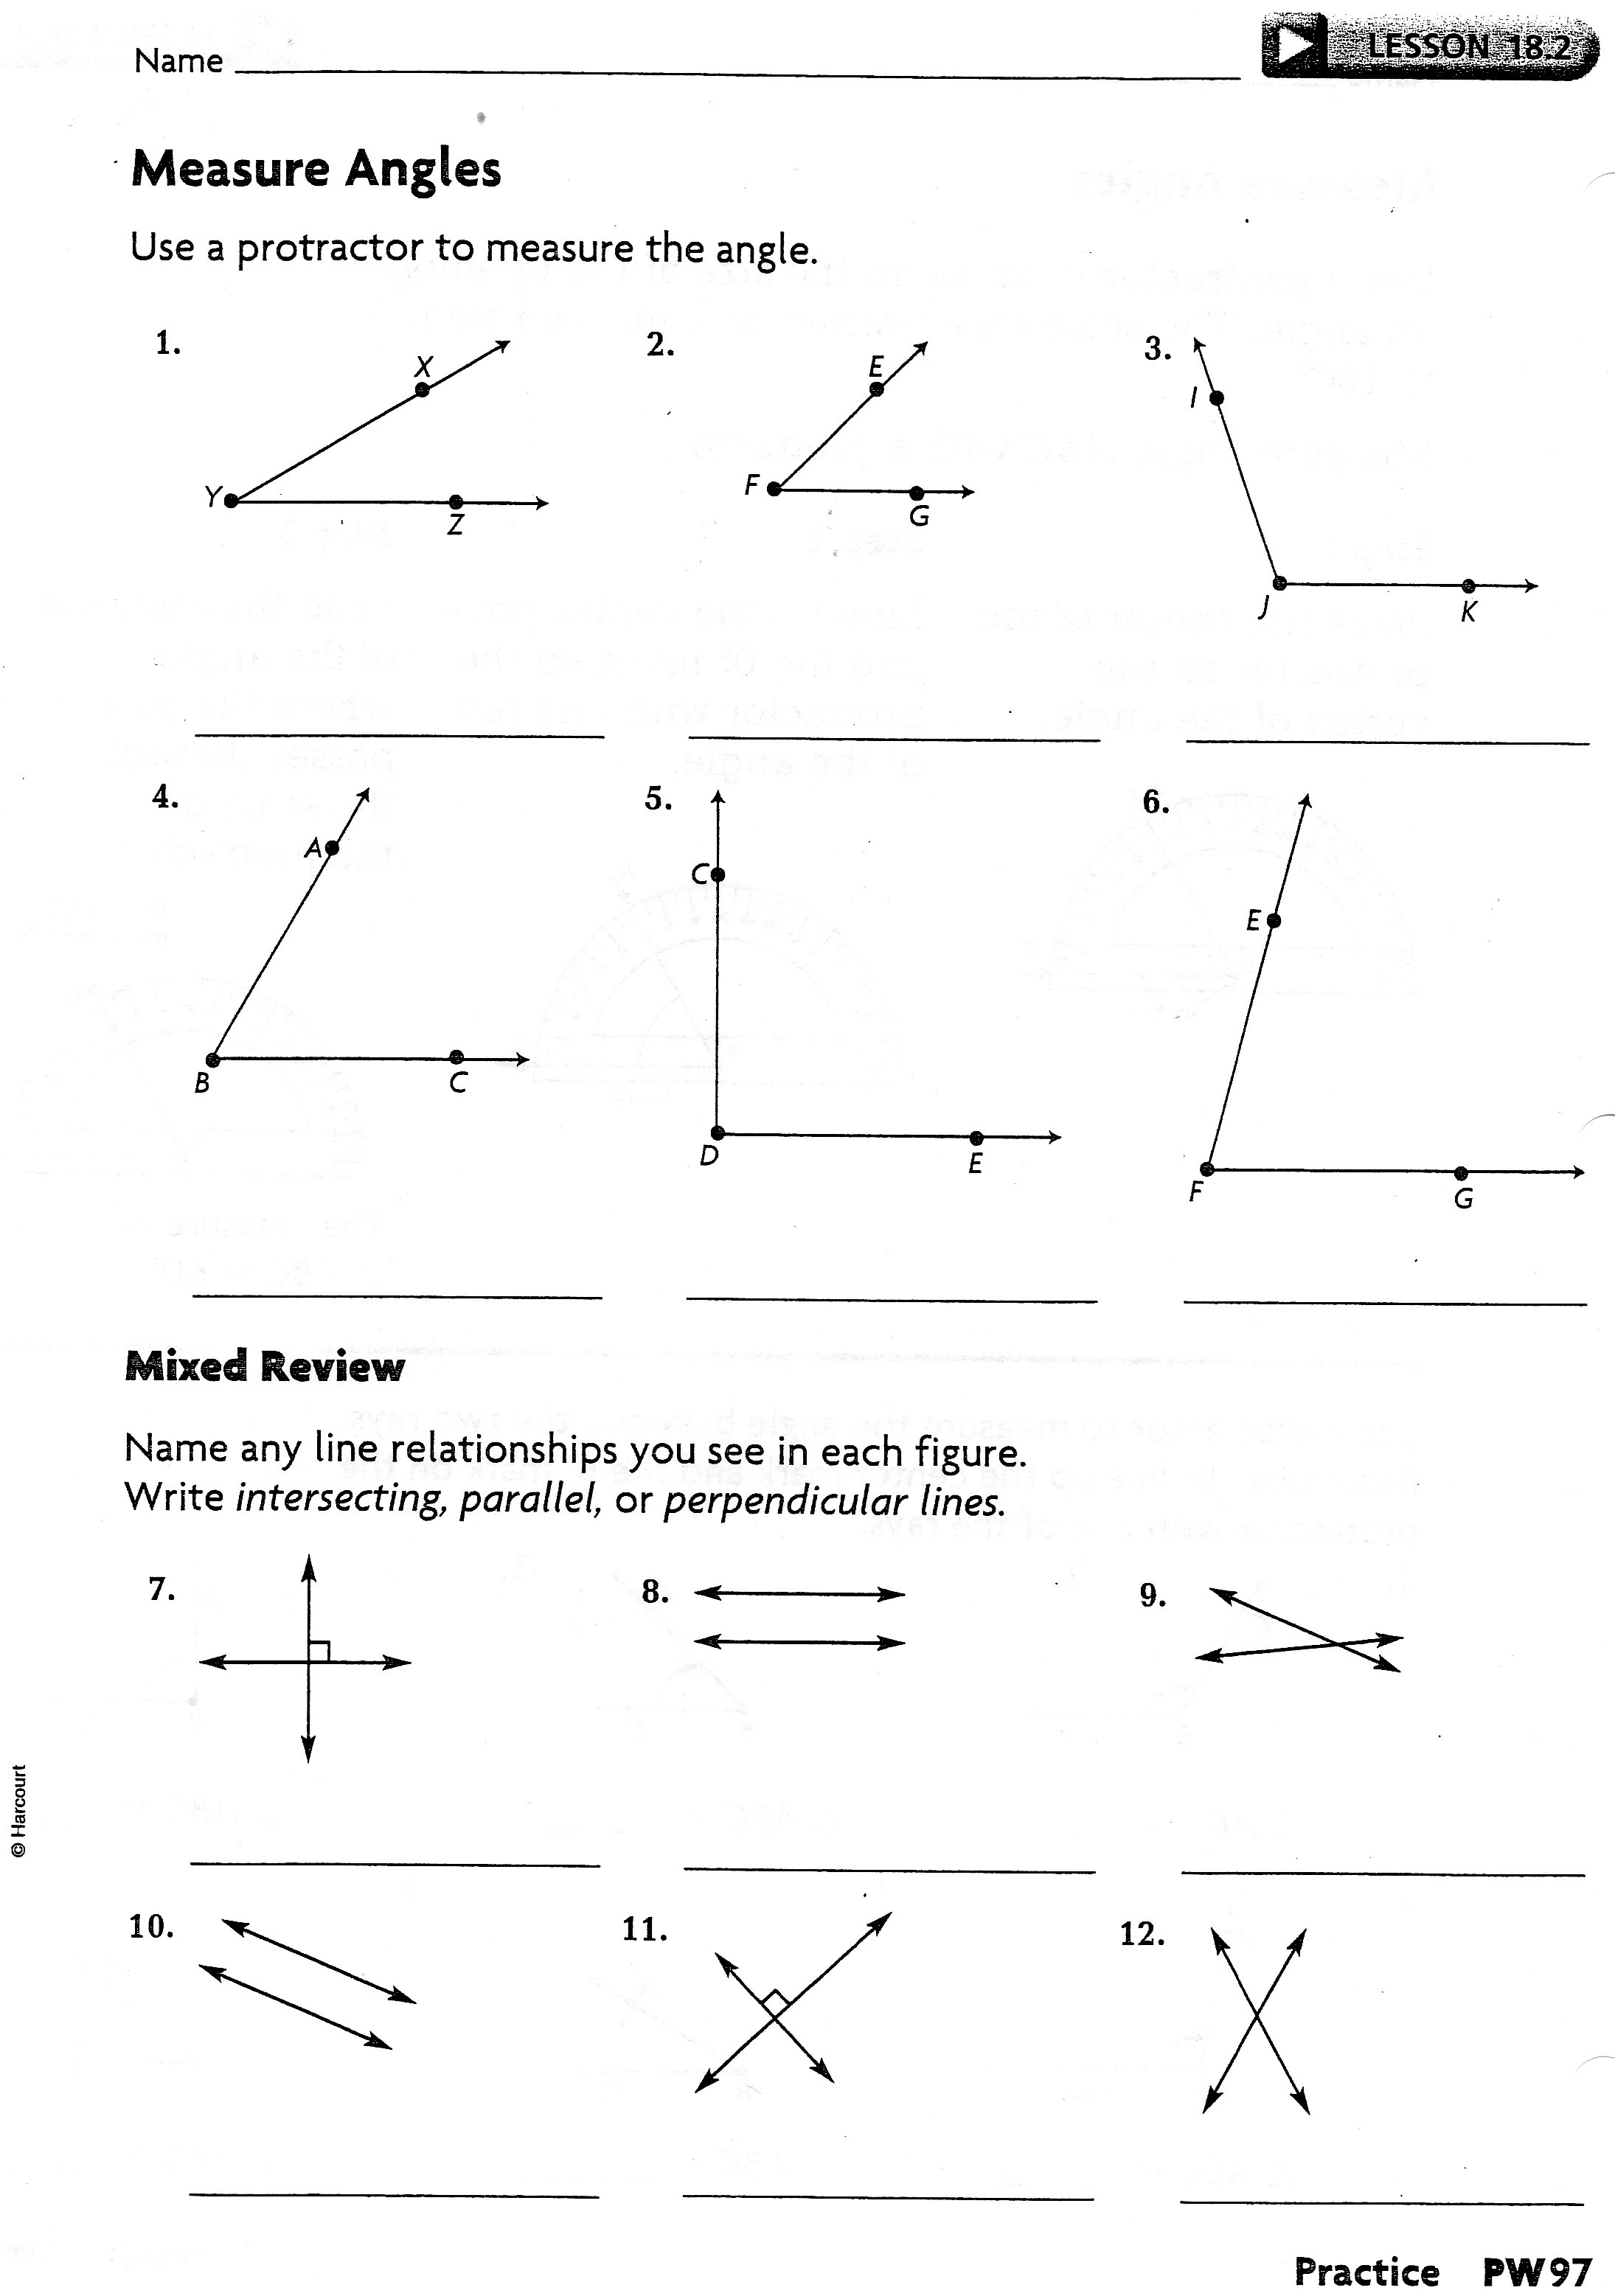 Worksheets Measuring Angles With A Protractor Worksheets phase iii lesson 18 2 practice worksheet jpg